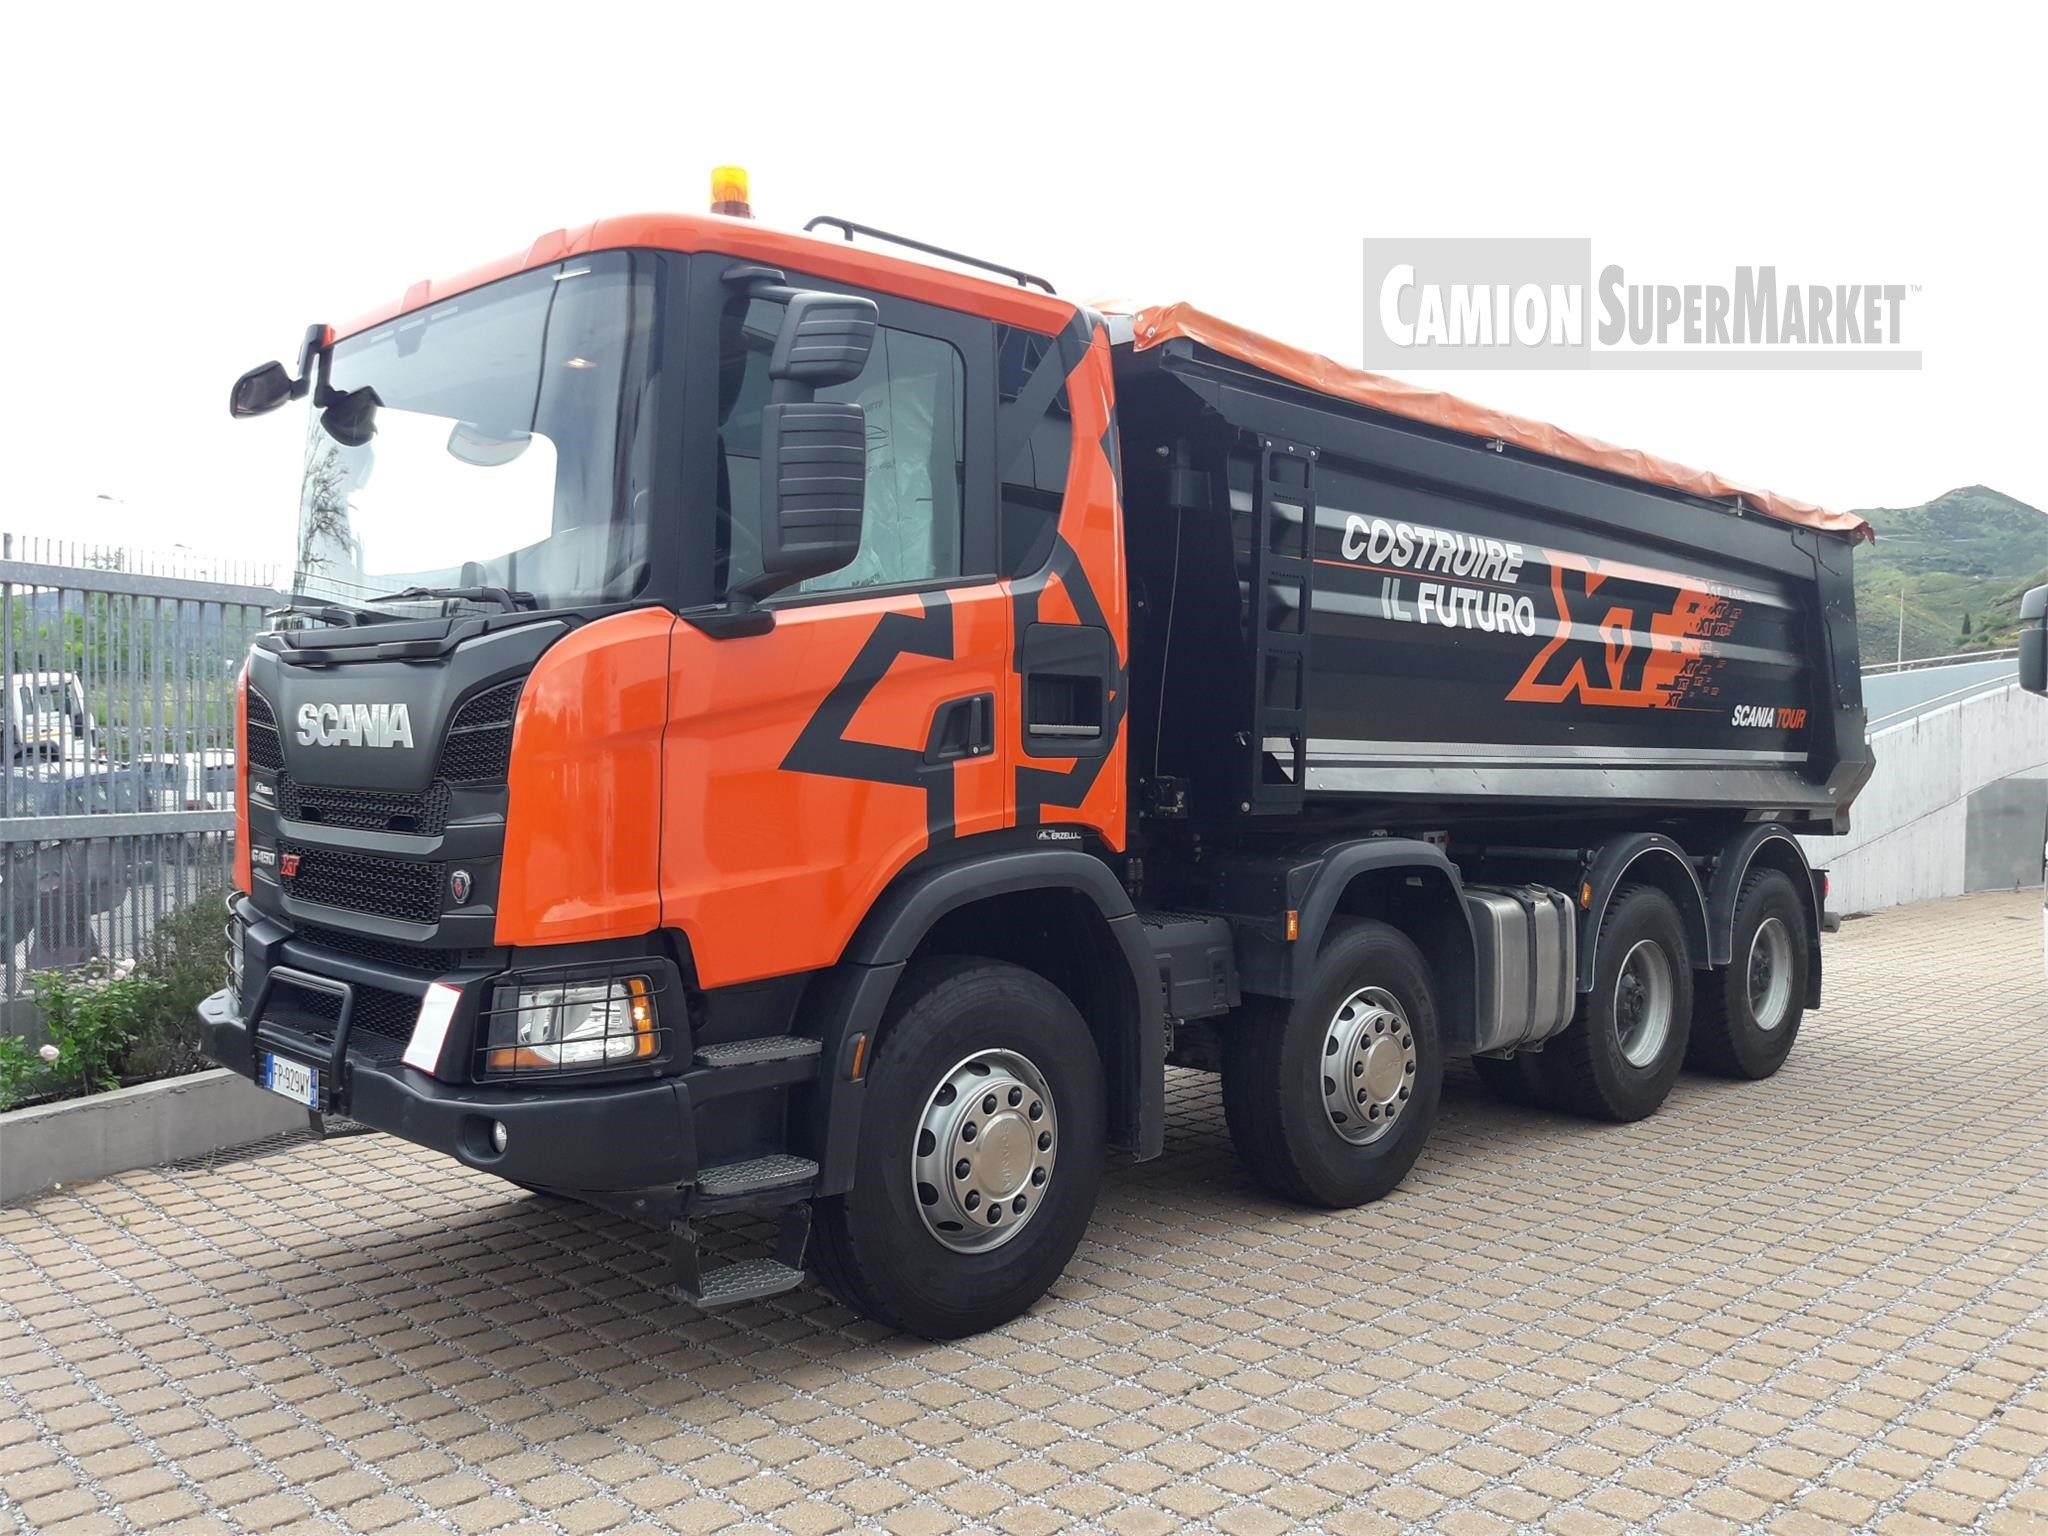 Scania G450 used